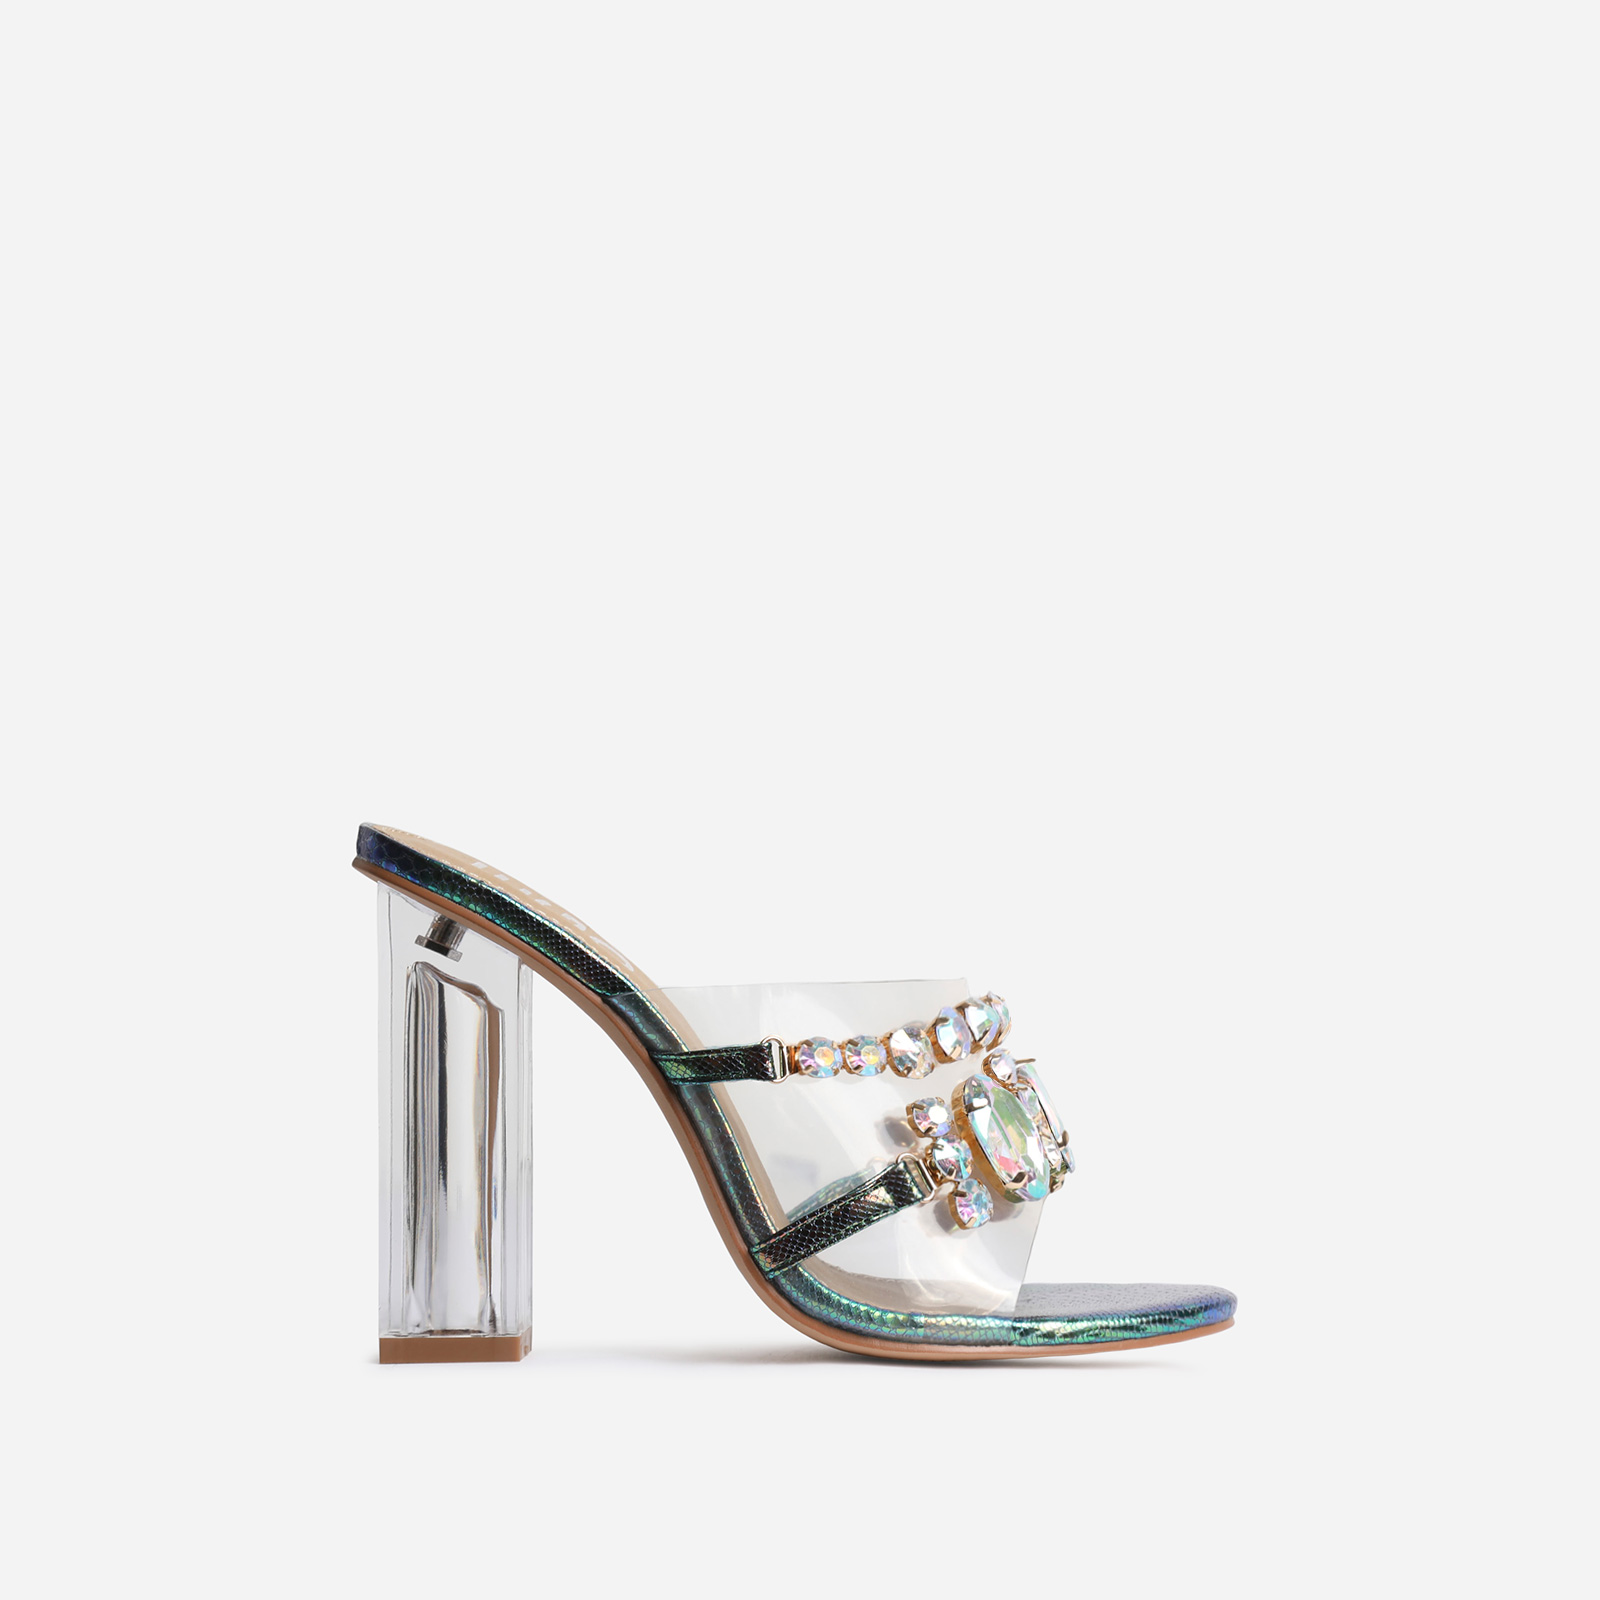 Frost Gem Embellished Perspex Peep Toe Block Heel Mule In Green Snake Print Faux Leather